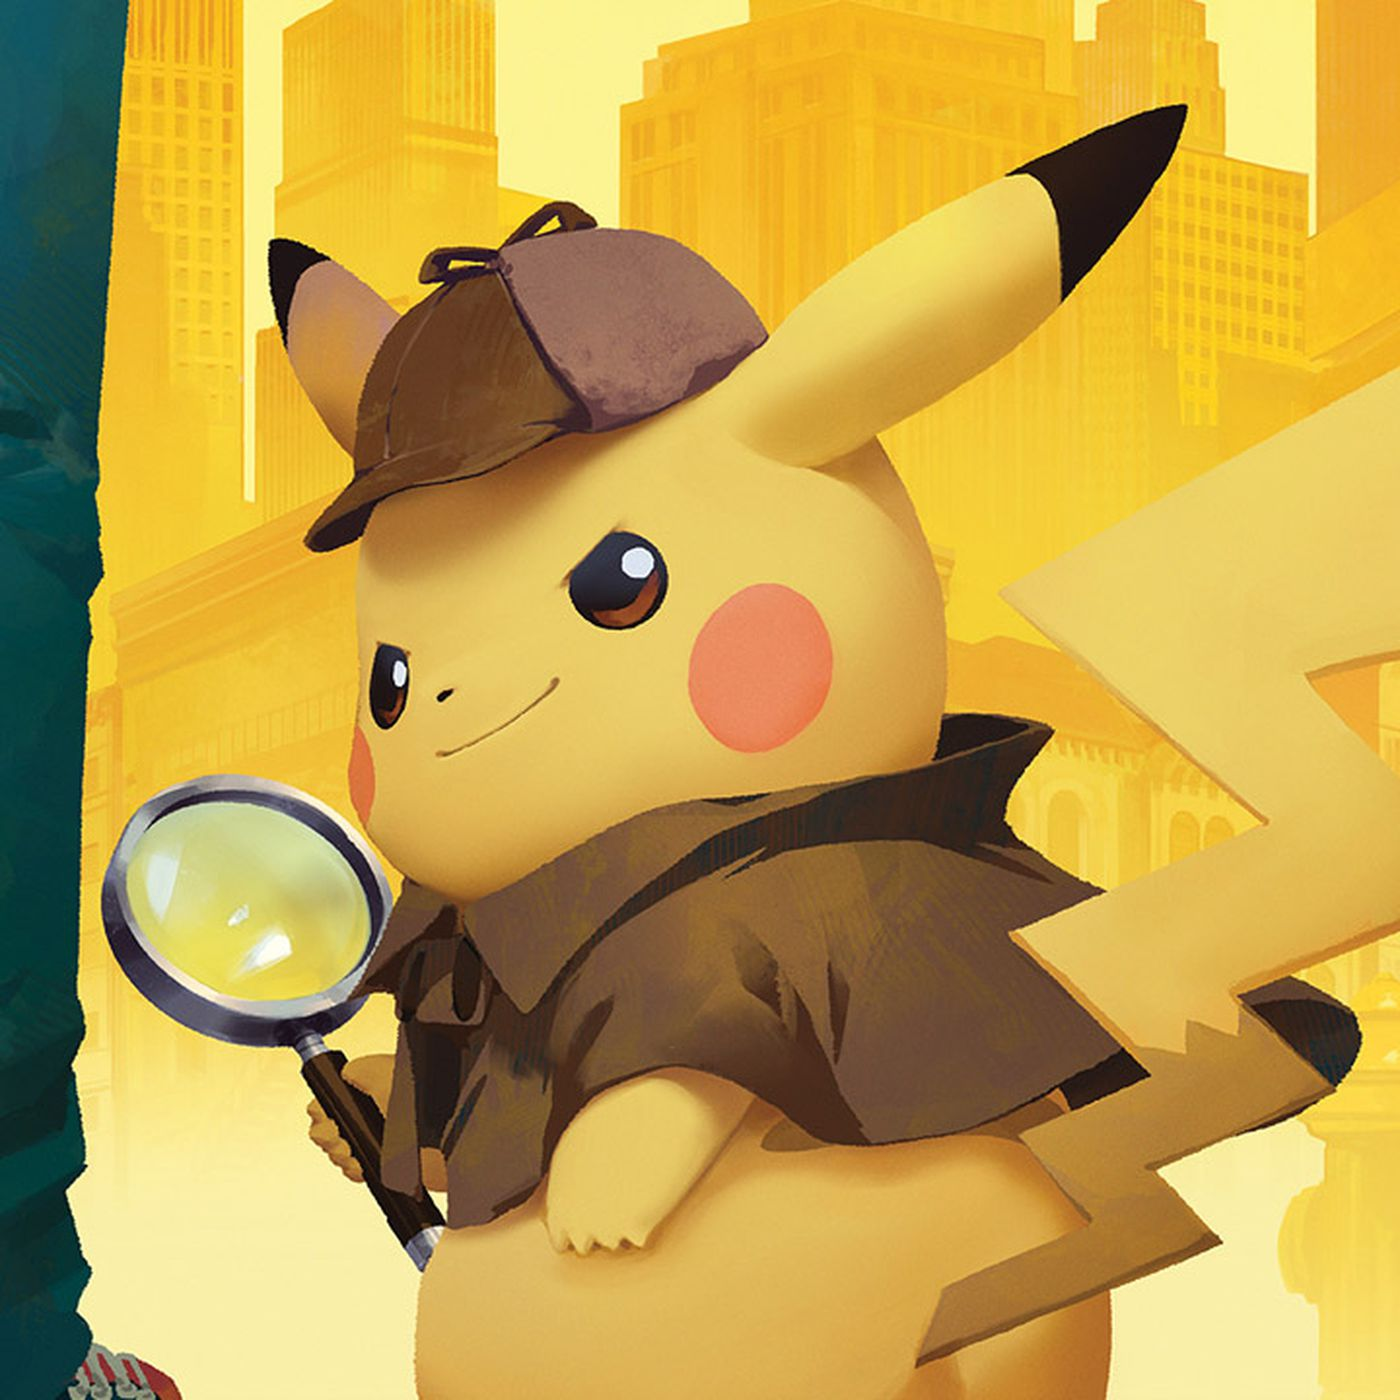 Detective Pikachu's creators say the game's real mystery is